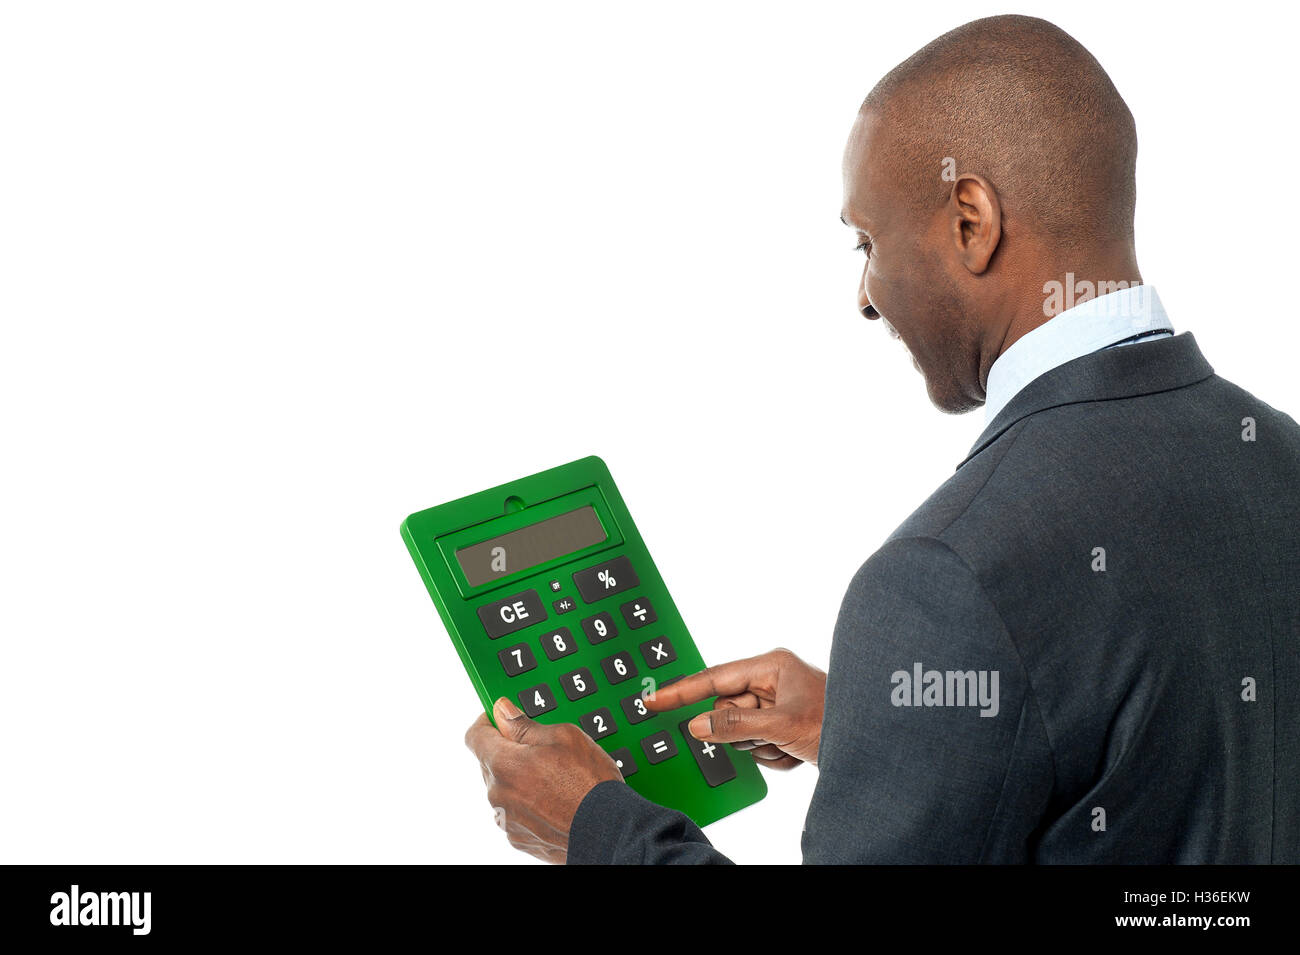 Rear view of businessman using calculator - Stock Image